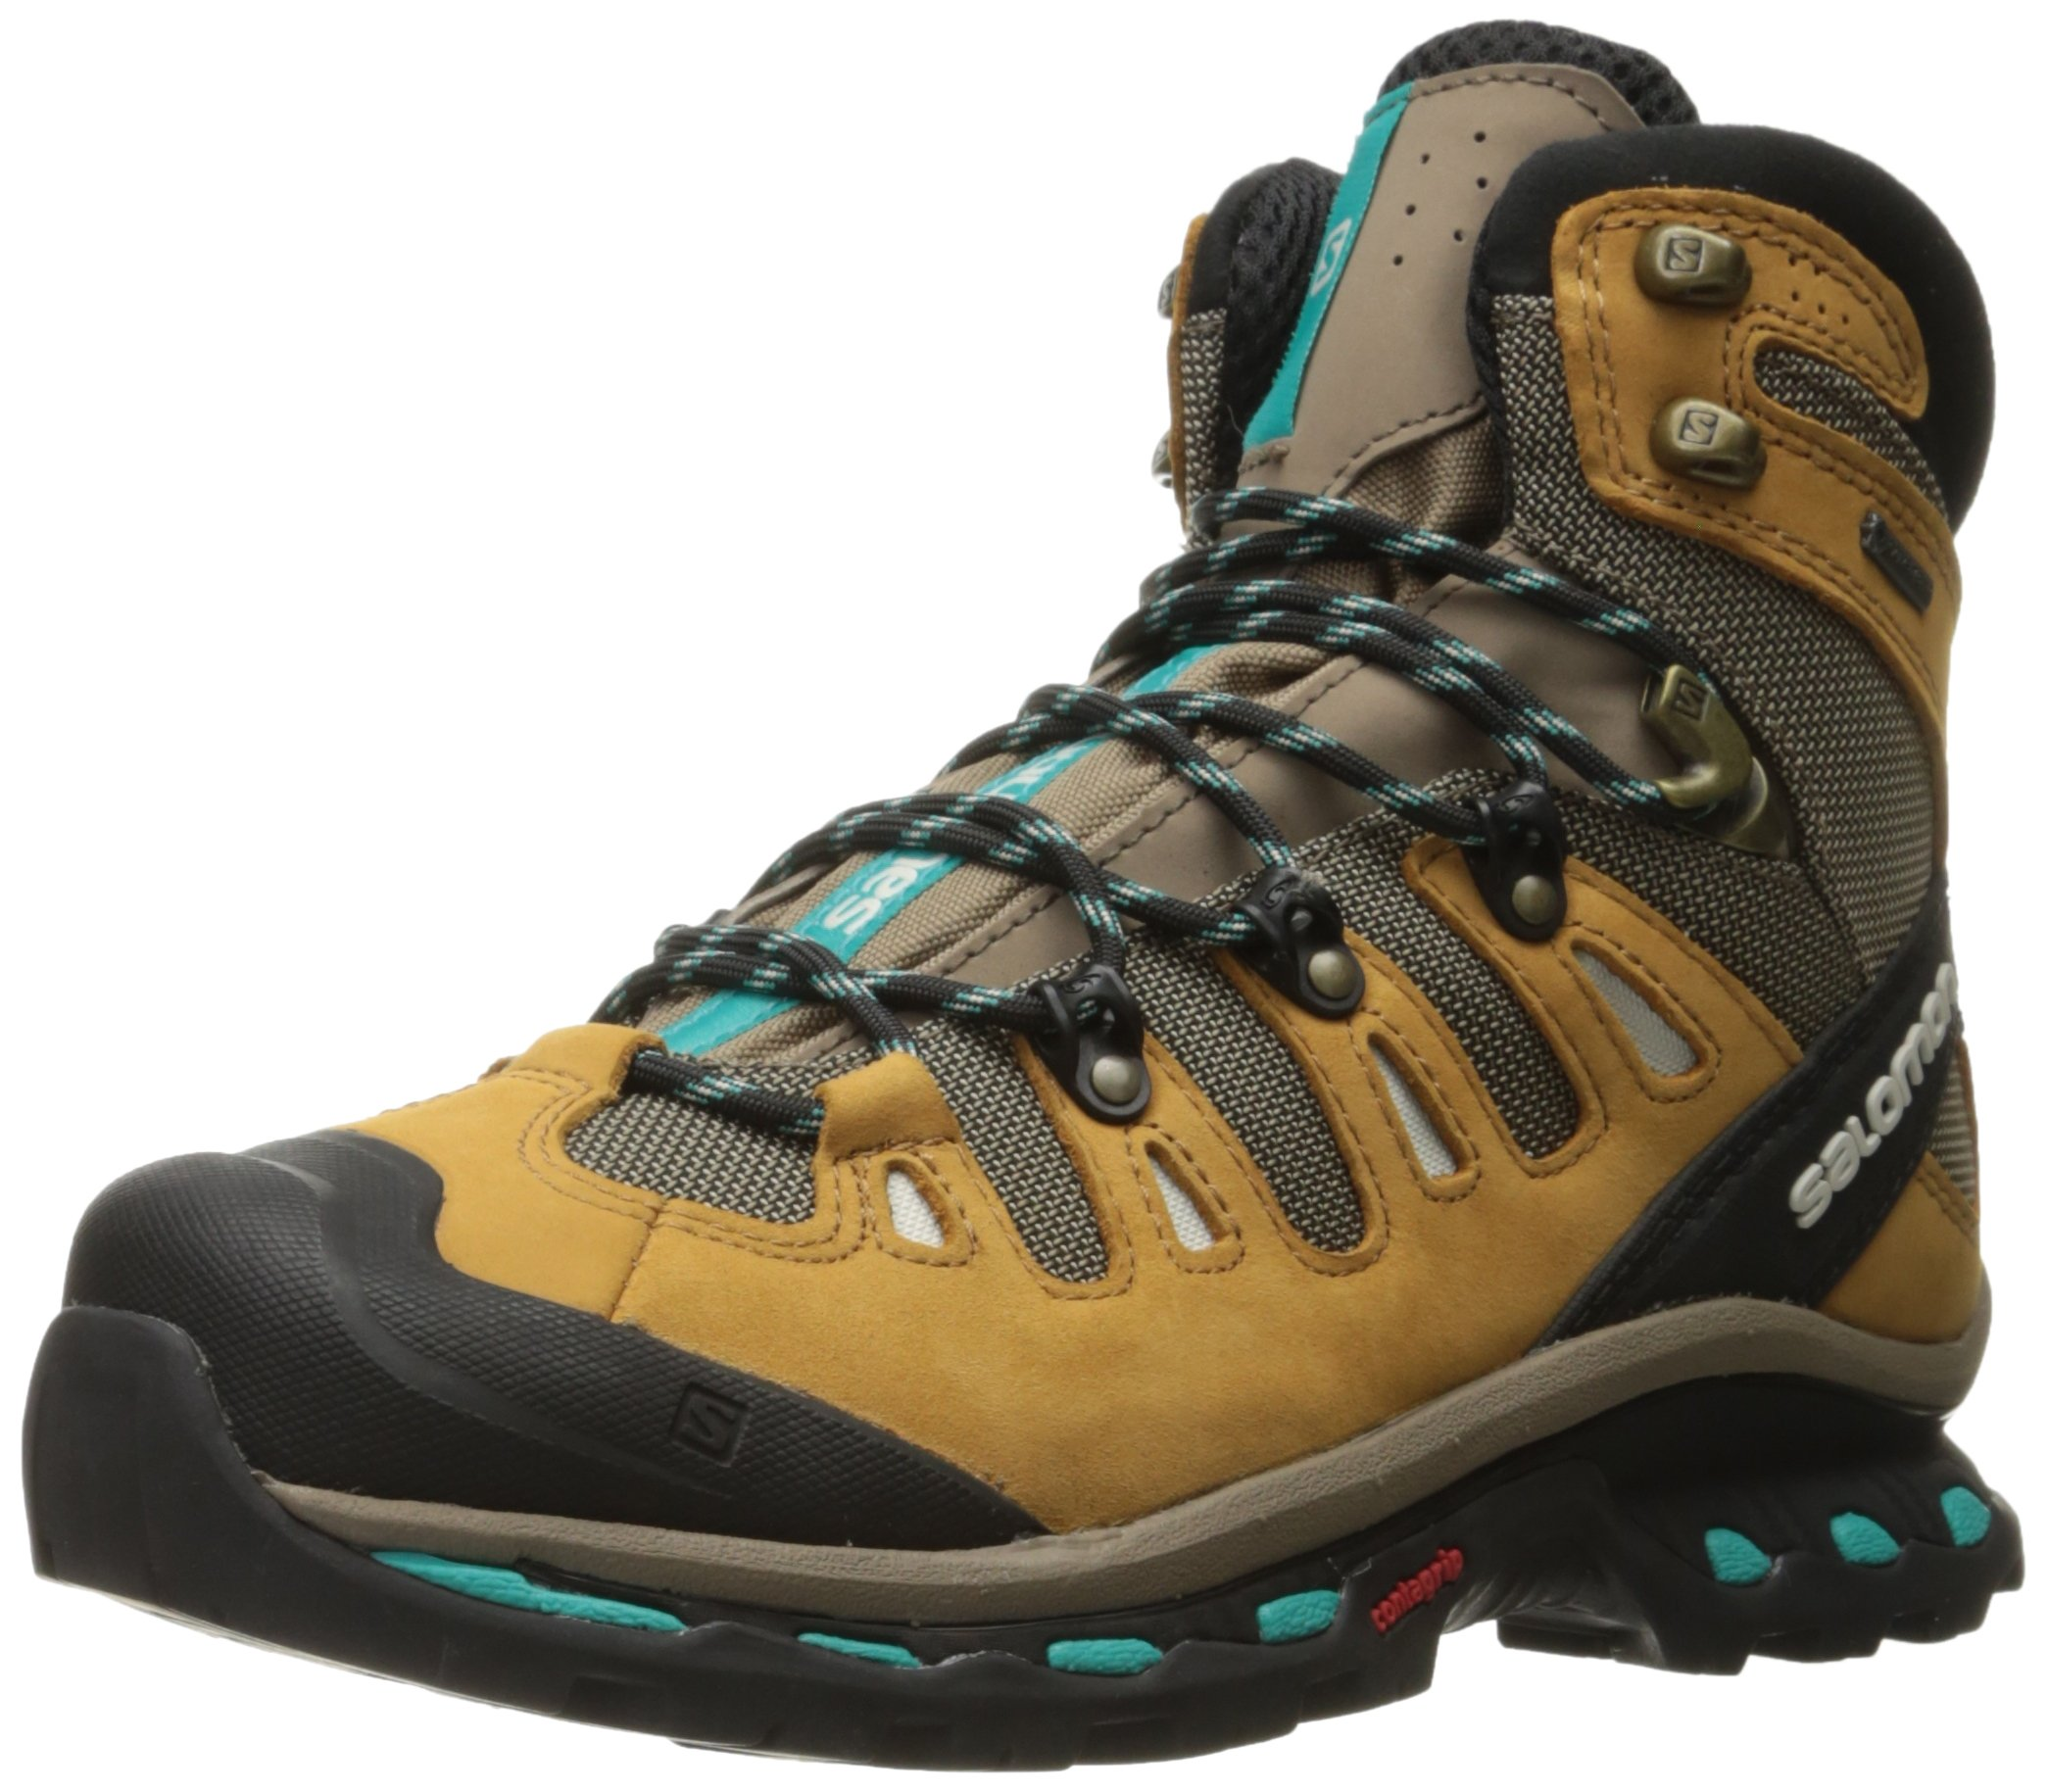 Salomon Women's Quest 4d 2 Gtx W Backpacking Boot, Shrew/Camel Gold Leather/Teal Blue Fabric, 8.5 M US by Salomon (Image #1)